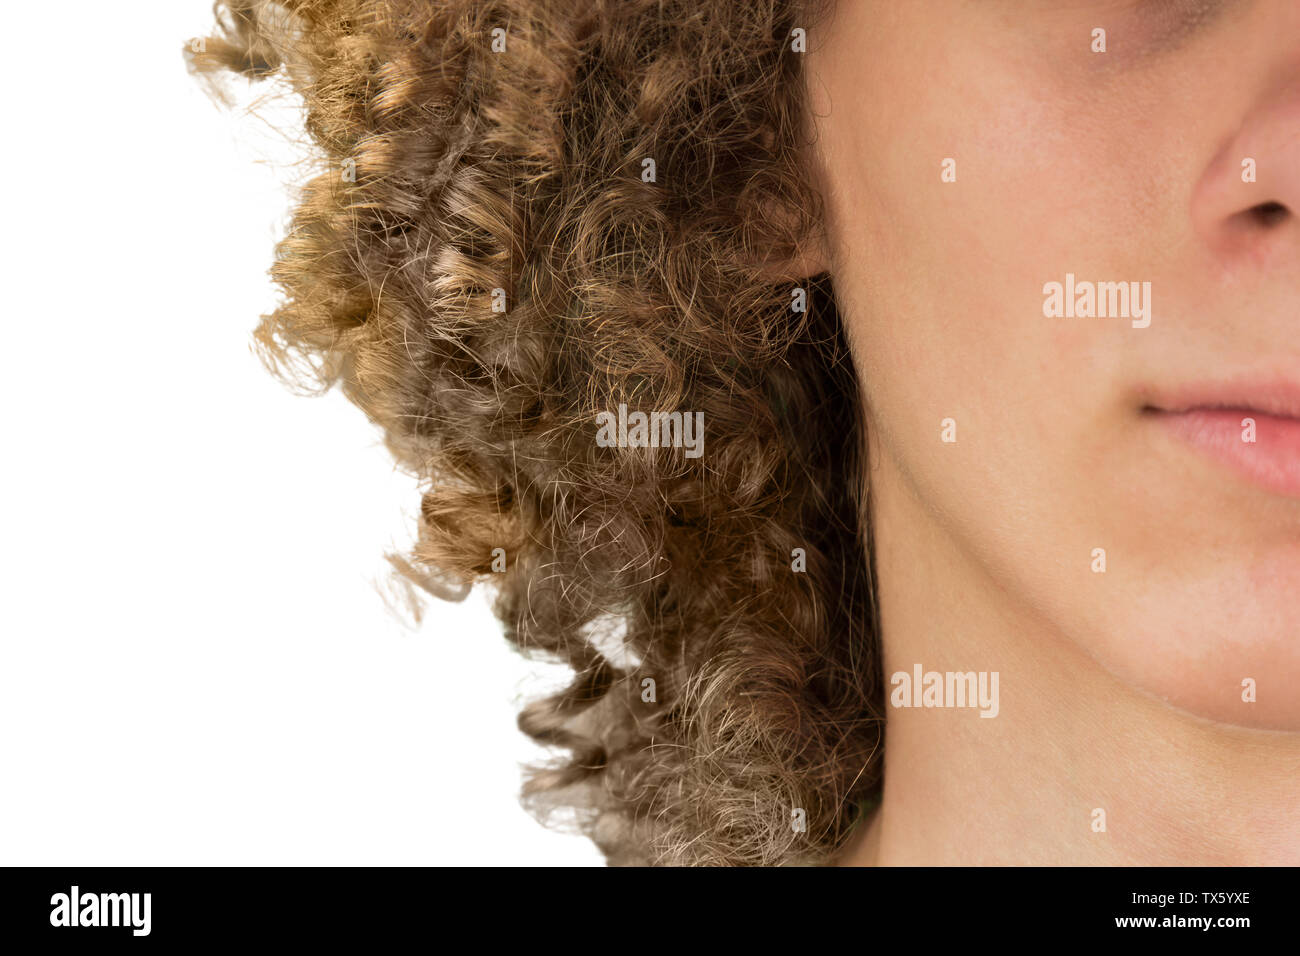 splited in half cropped portrait of a young curly European man with long curly hair and closed eyes close up. very lush male hair. curling hair men's. Stock Photo